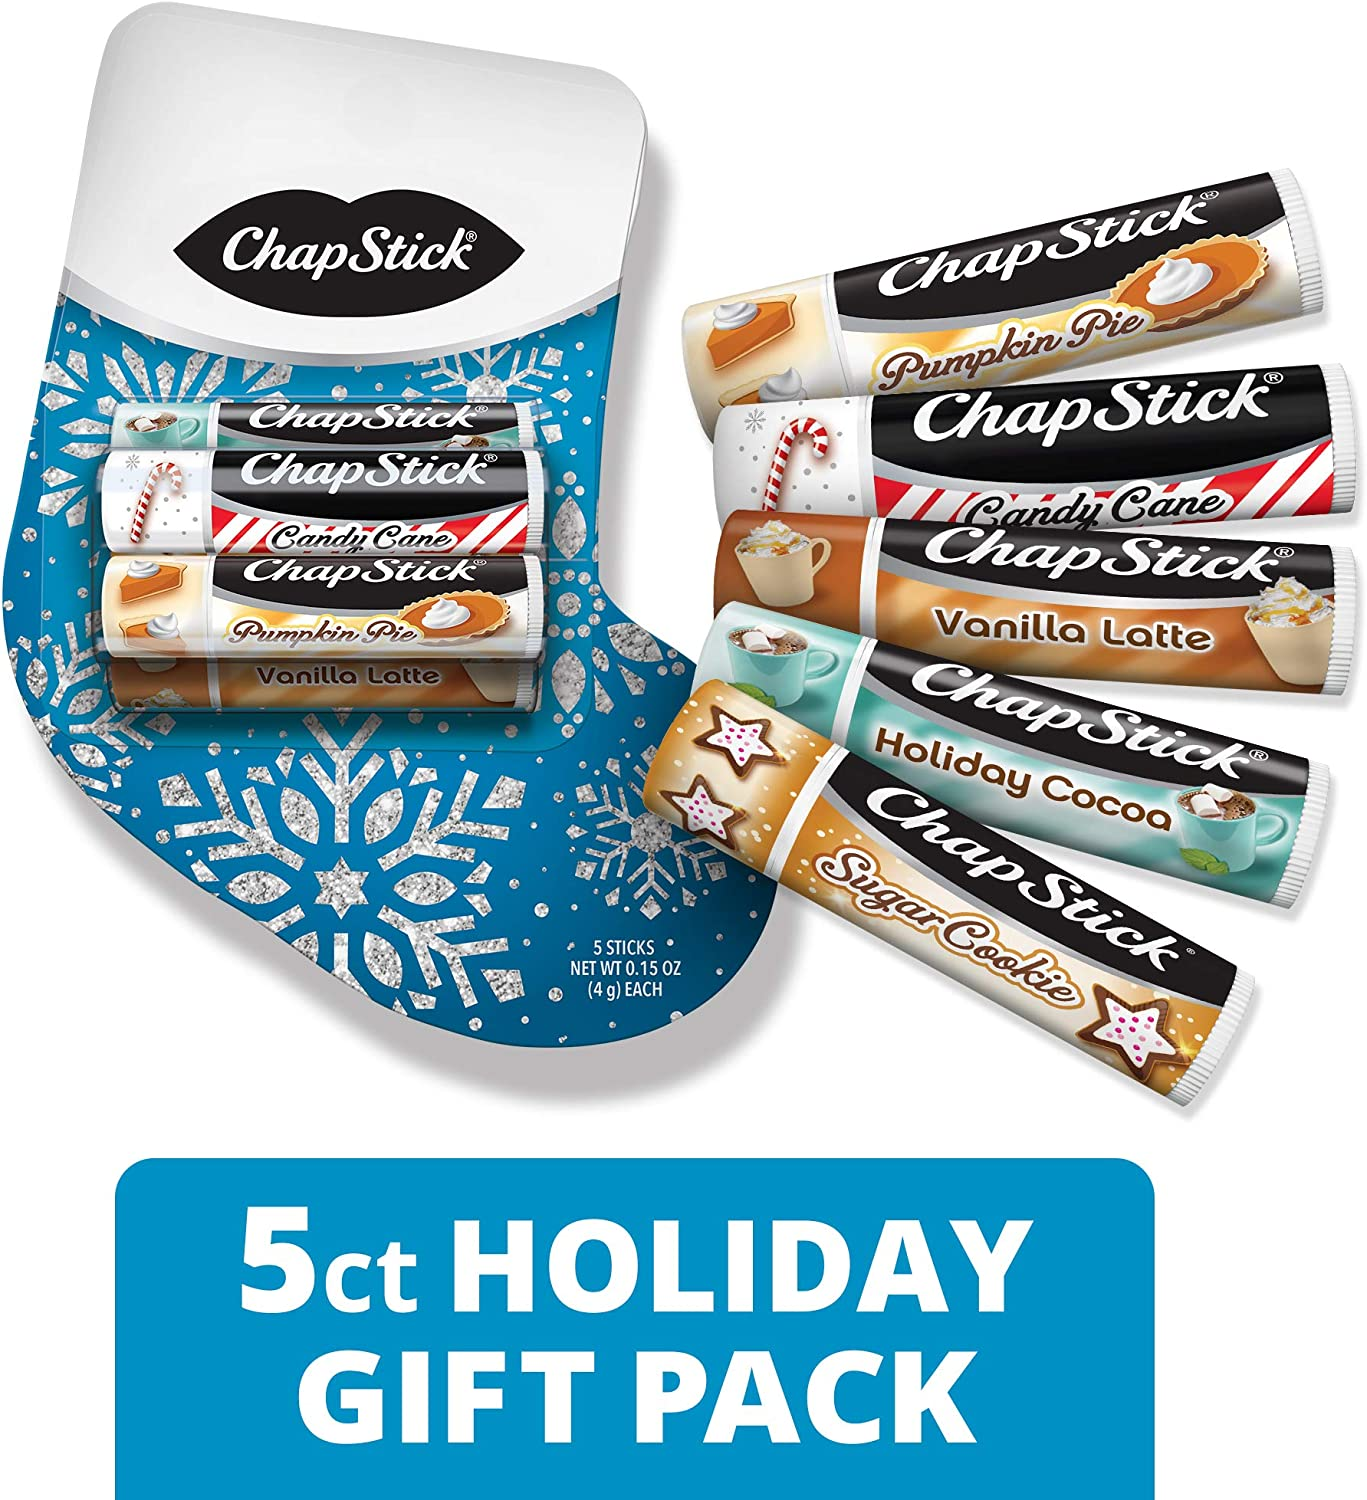 ChapStick Lip Balm Holiday Stocking Gift Pack (Assorted Flavors - Candy Cane, Holiday Cocoa, Sugar Cookie, Pumpkin Pie and Vanilla Latte, 0.15 Ounce, 5 Sticks), Lip Care, Moisturizer, Skin Protectant